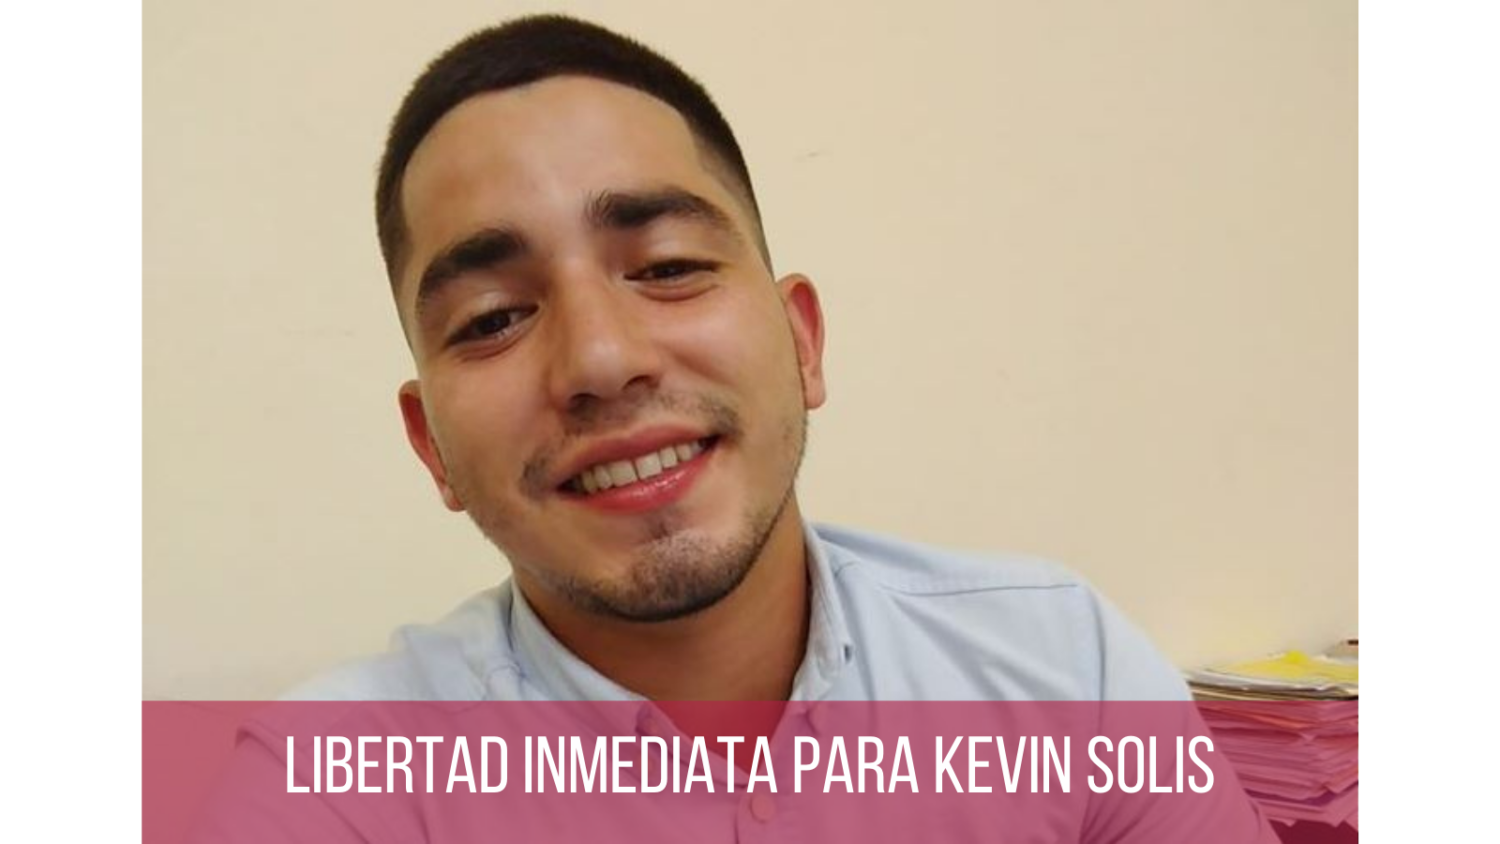 UN Working Group on Arbitrary Detention requests immediate release of Nicaraguan student Kevin Solis